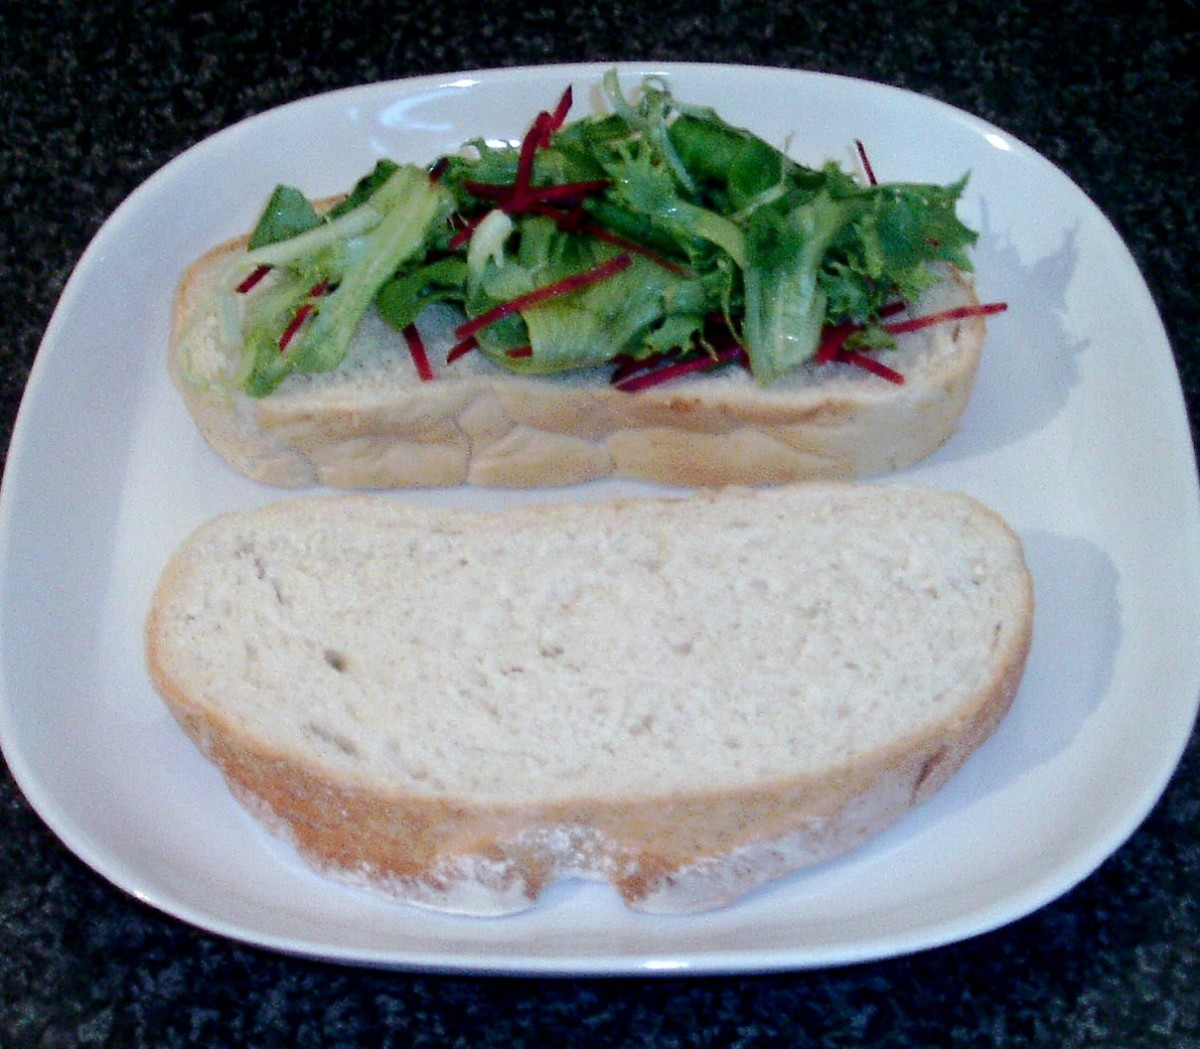 Salad leaves are laid on thick slice of bread